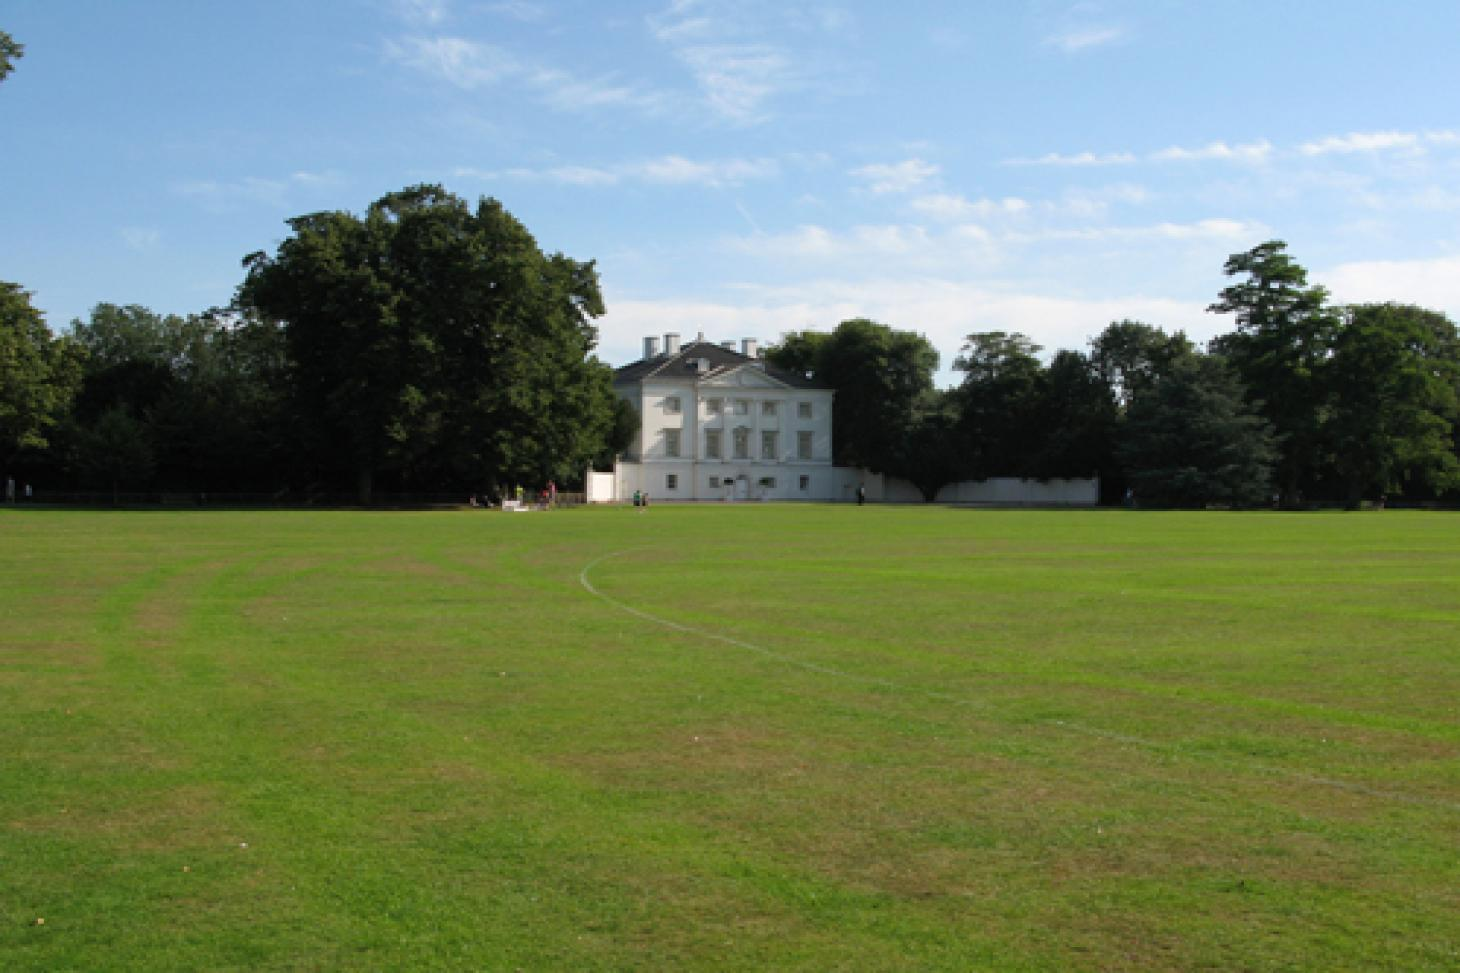 Marble Hill Park 11 a side | Grass football pitch